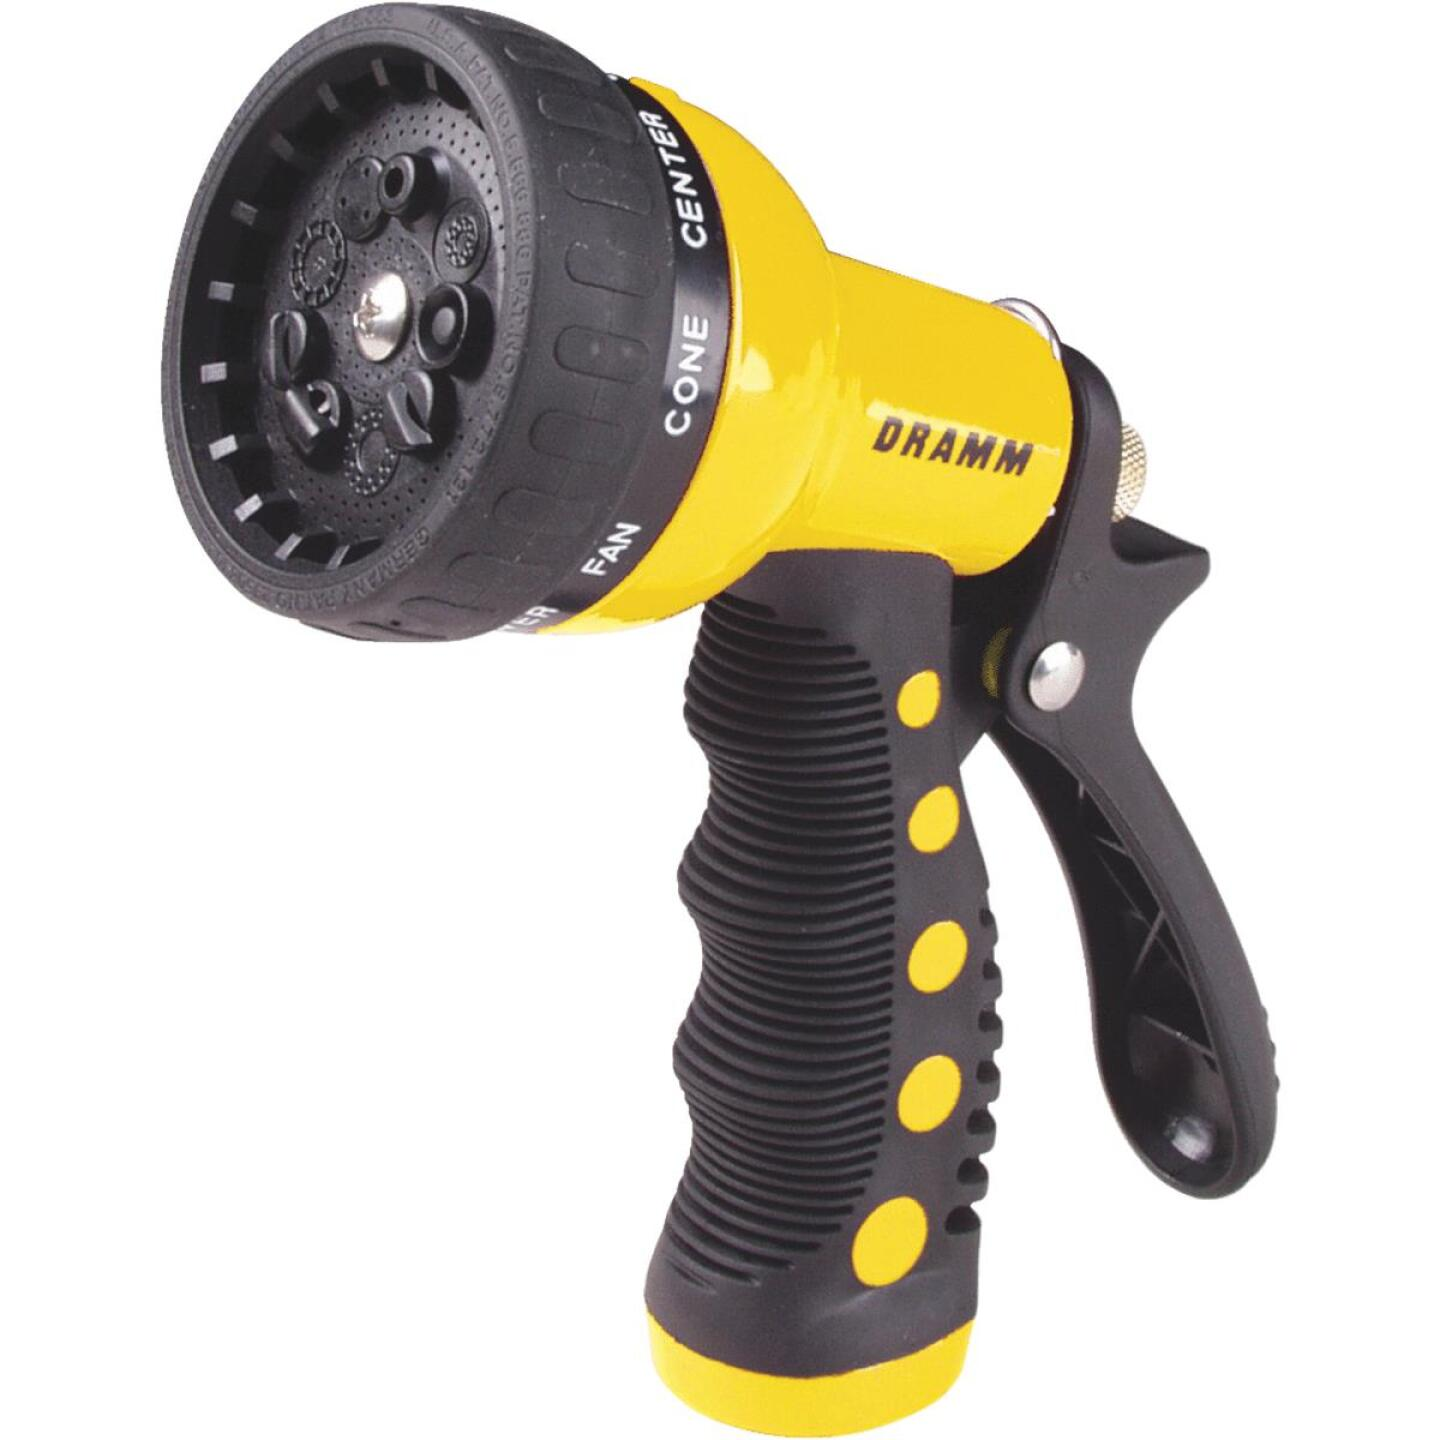 Dramm Heavy-Duty Metal 9-Pattern Nozzle, Yellow Image 1